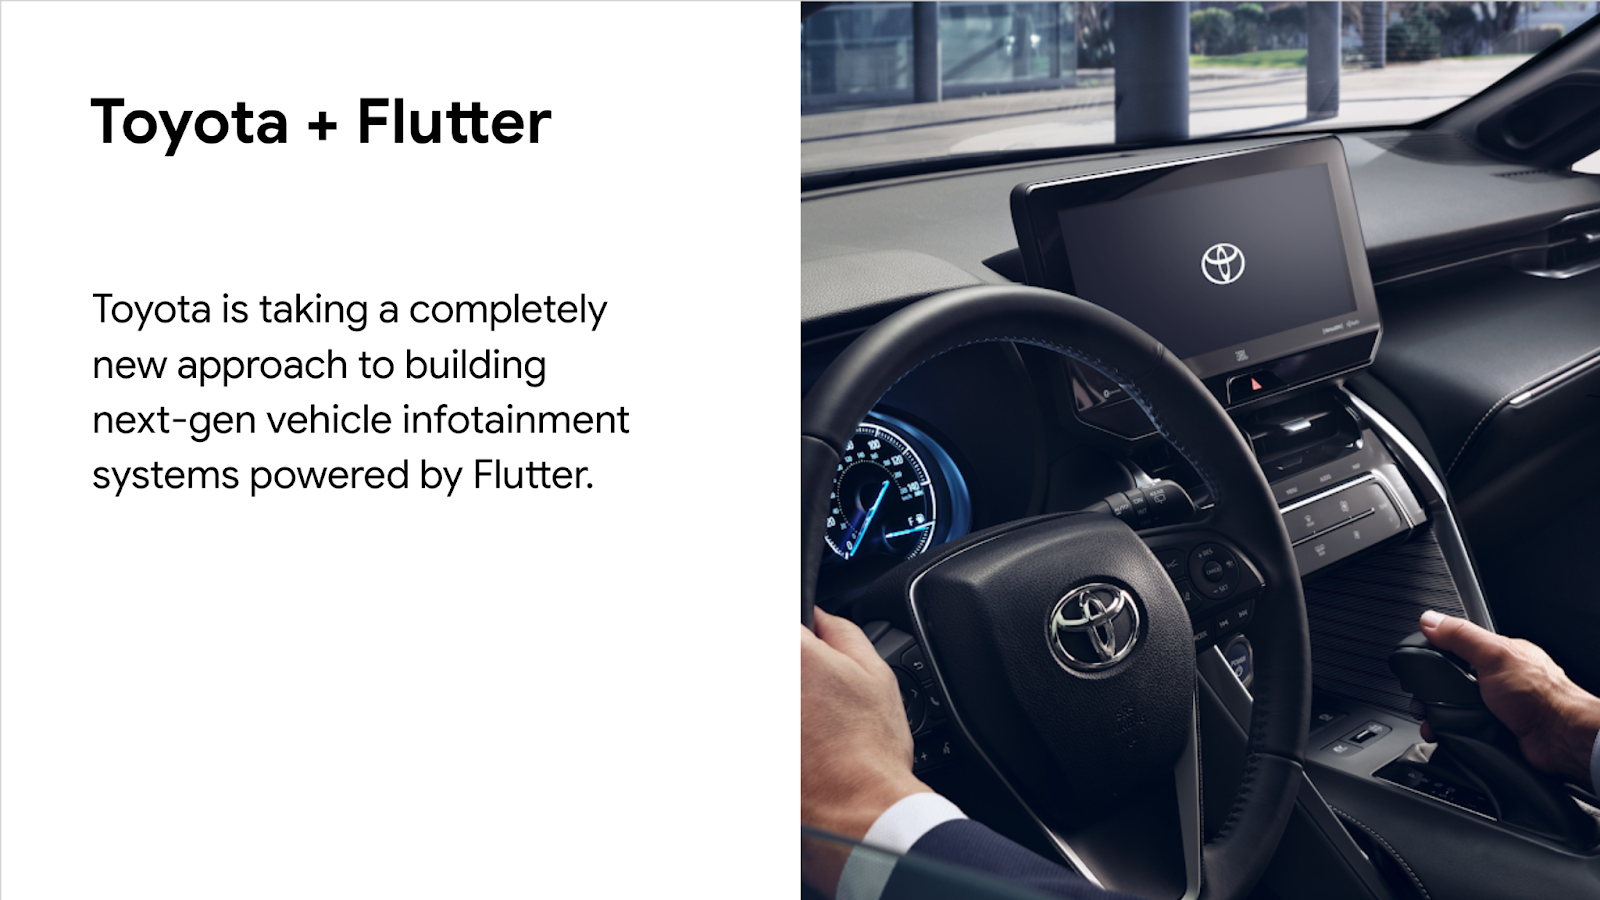 Toyota using Flutter in vehicle infotainment systems